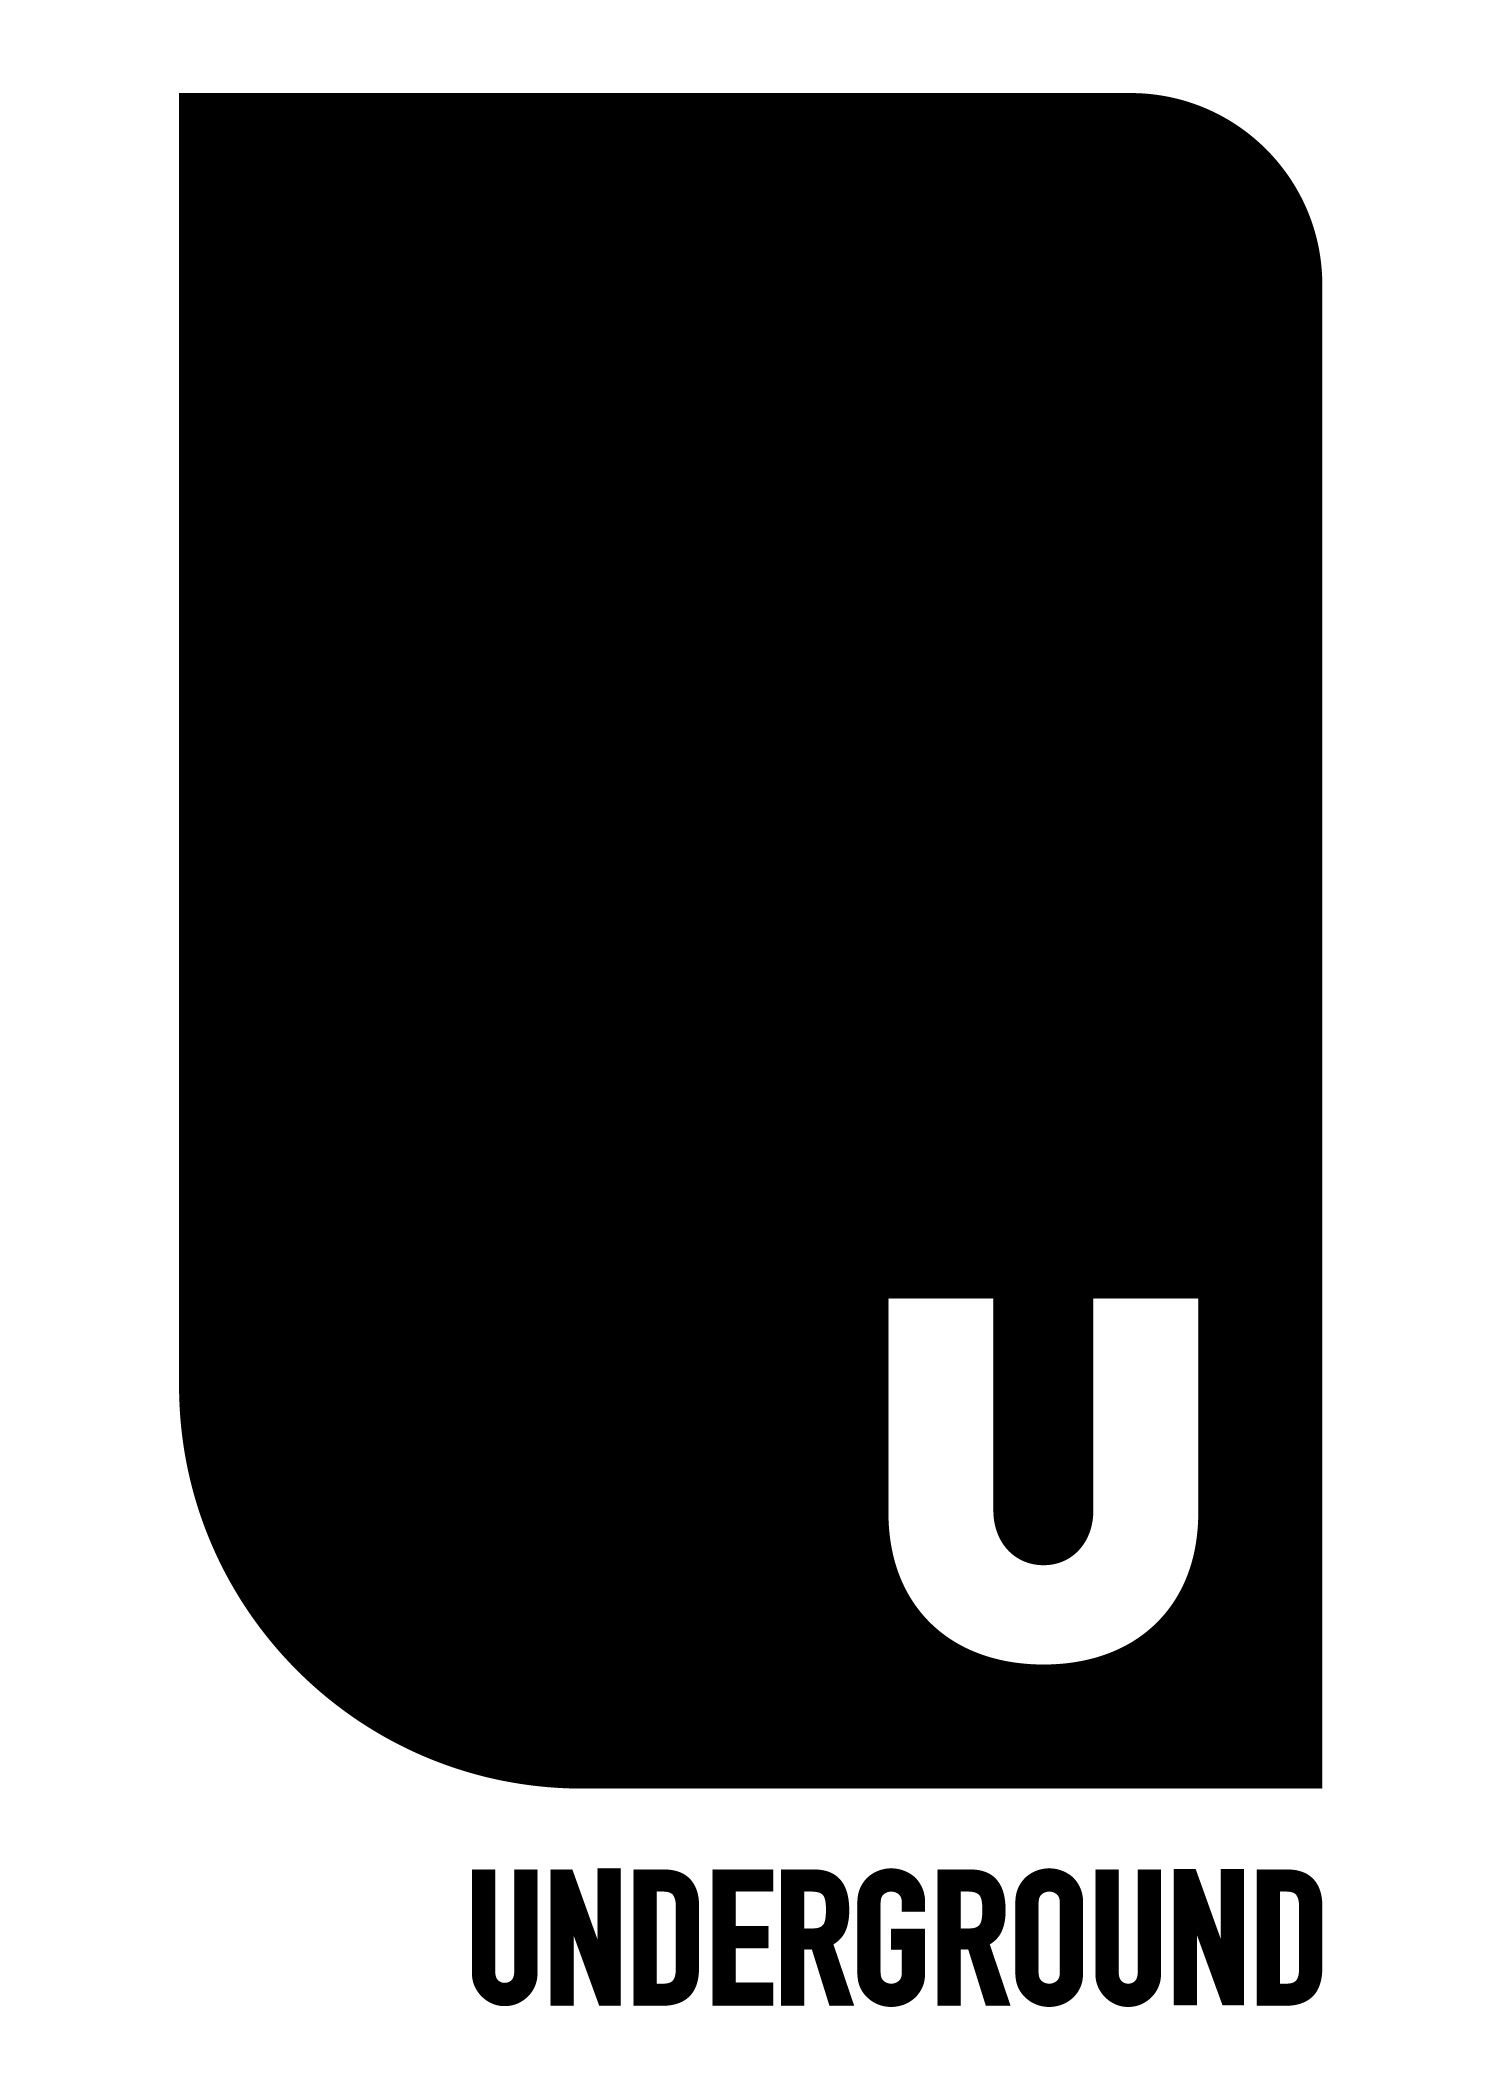 logo-vertical-black.jpg